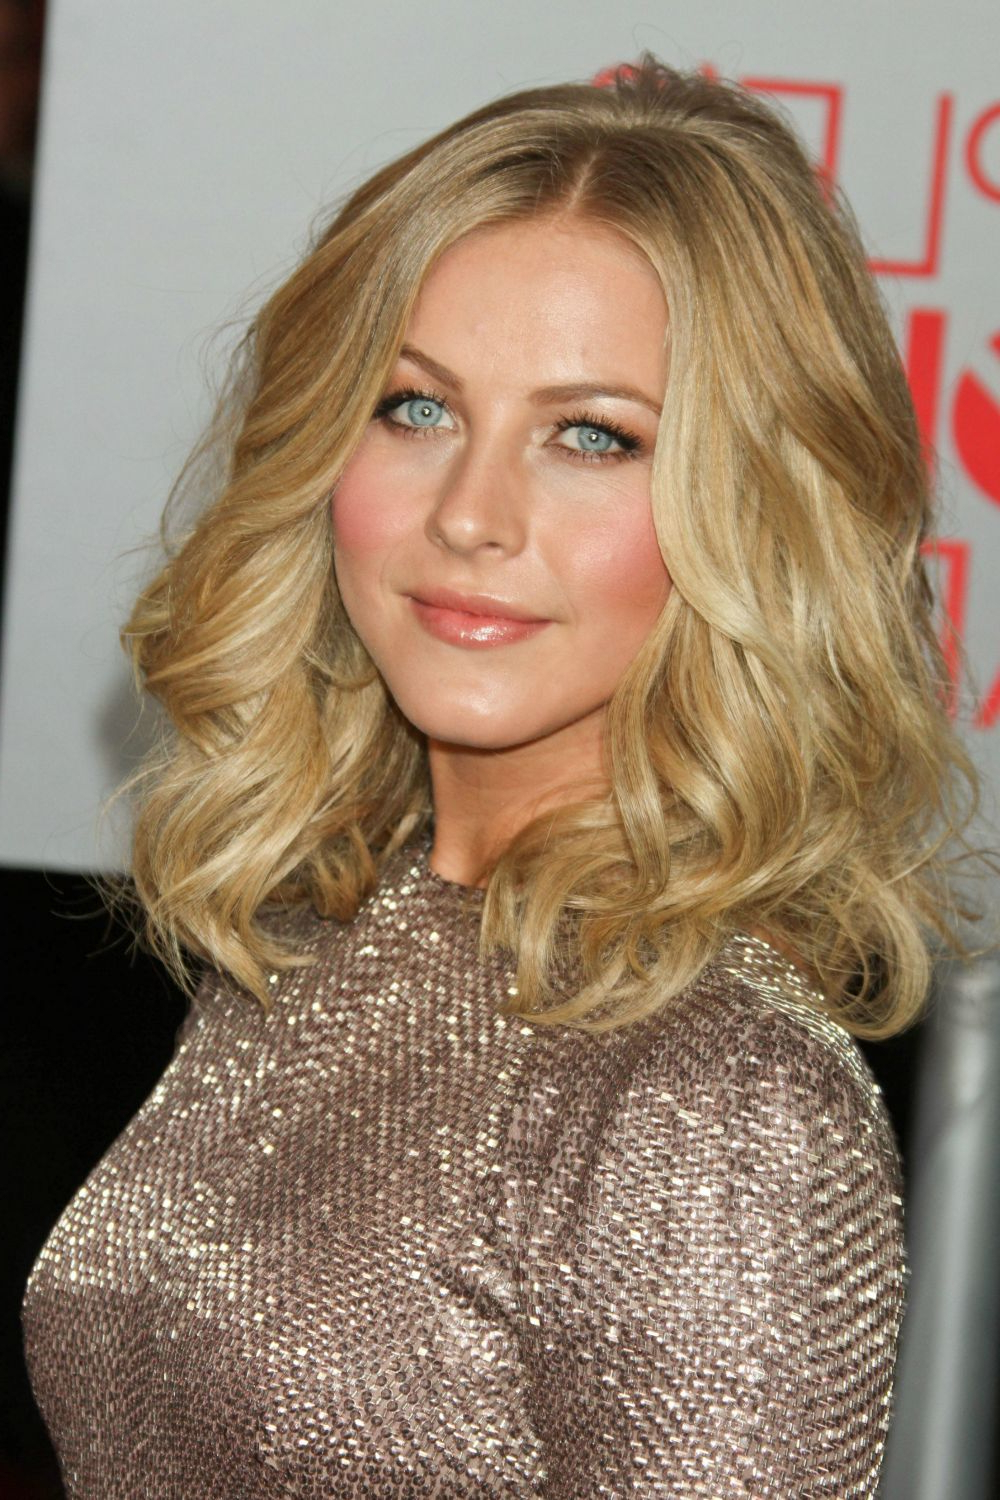 31 Gorgeous Photos Of Julianne Hough's Hair (Gallery 15 of 20)